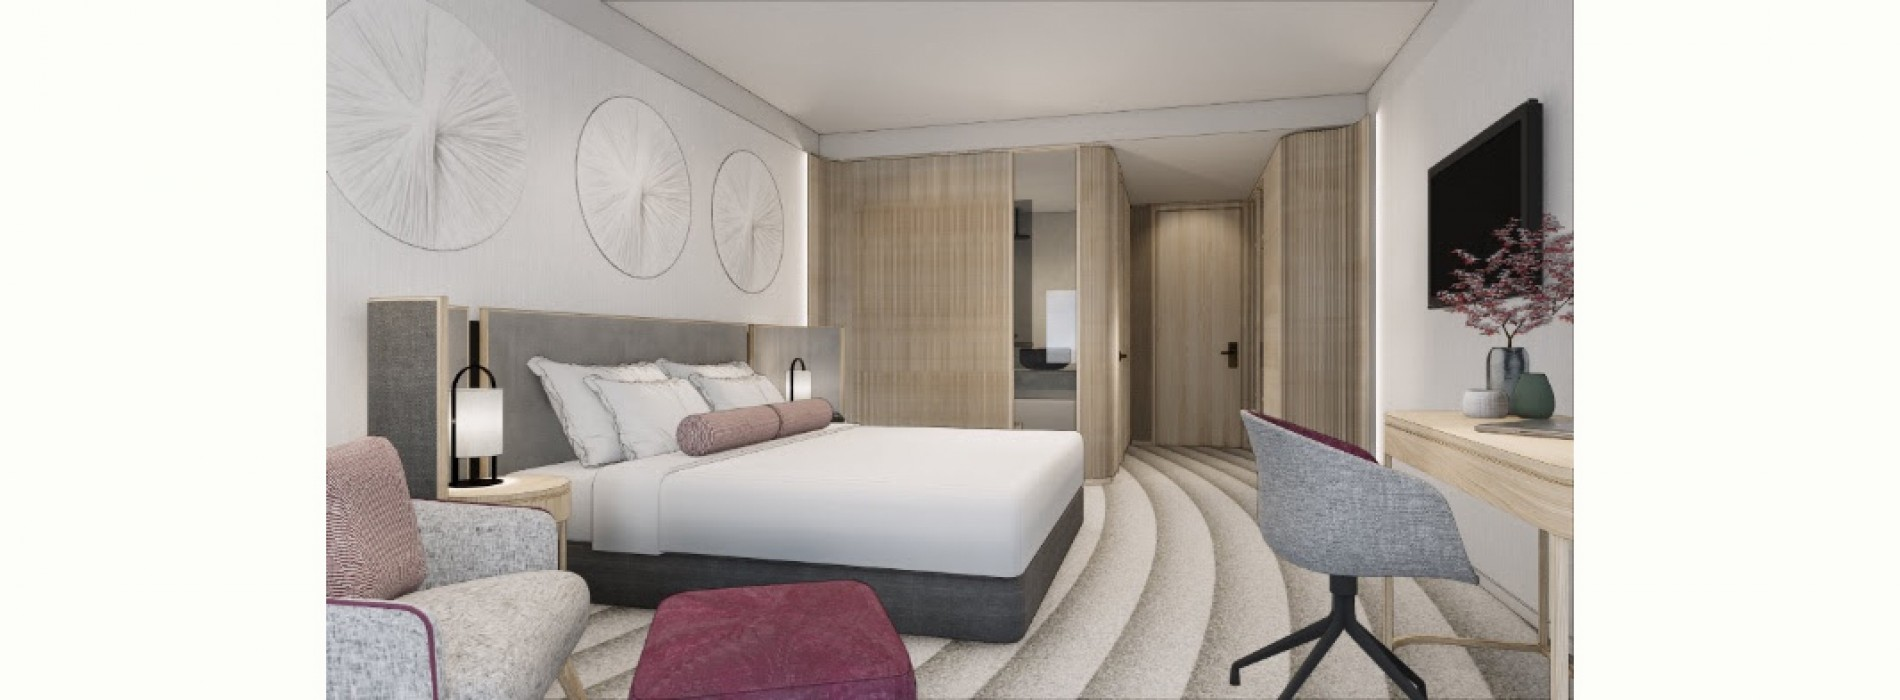 Bates Smart unveil designs for Ana Crowne Plaza Hotel in Kobe, Japan